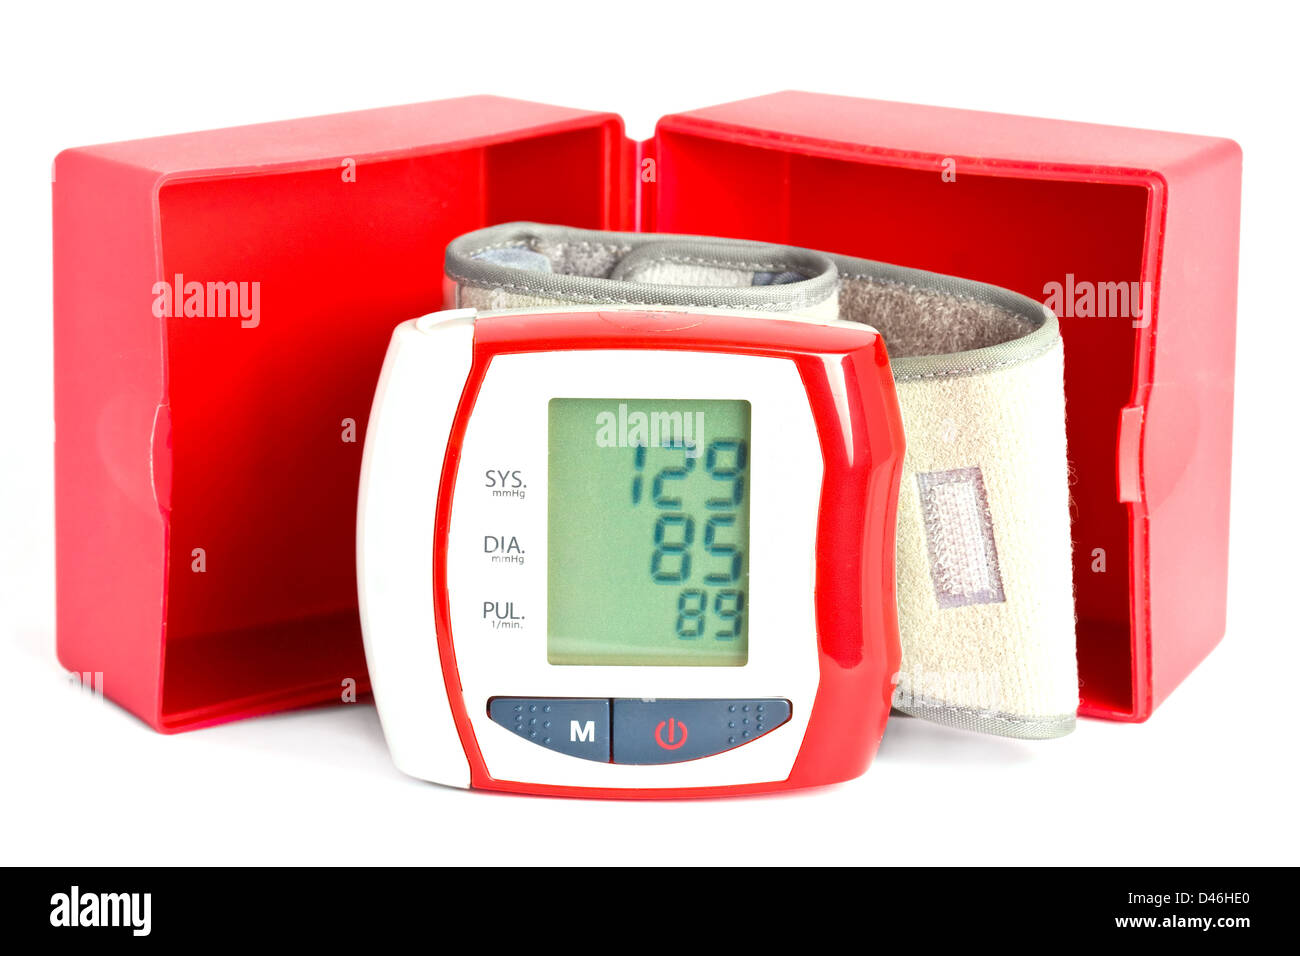 Wrist blood pressure meter with box and data on the display. - Stock Image